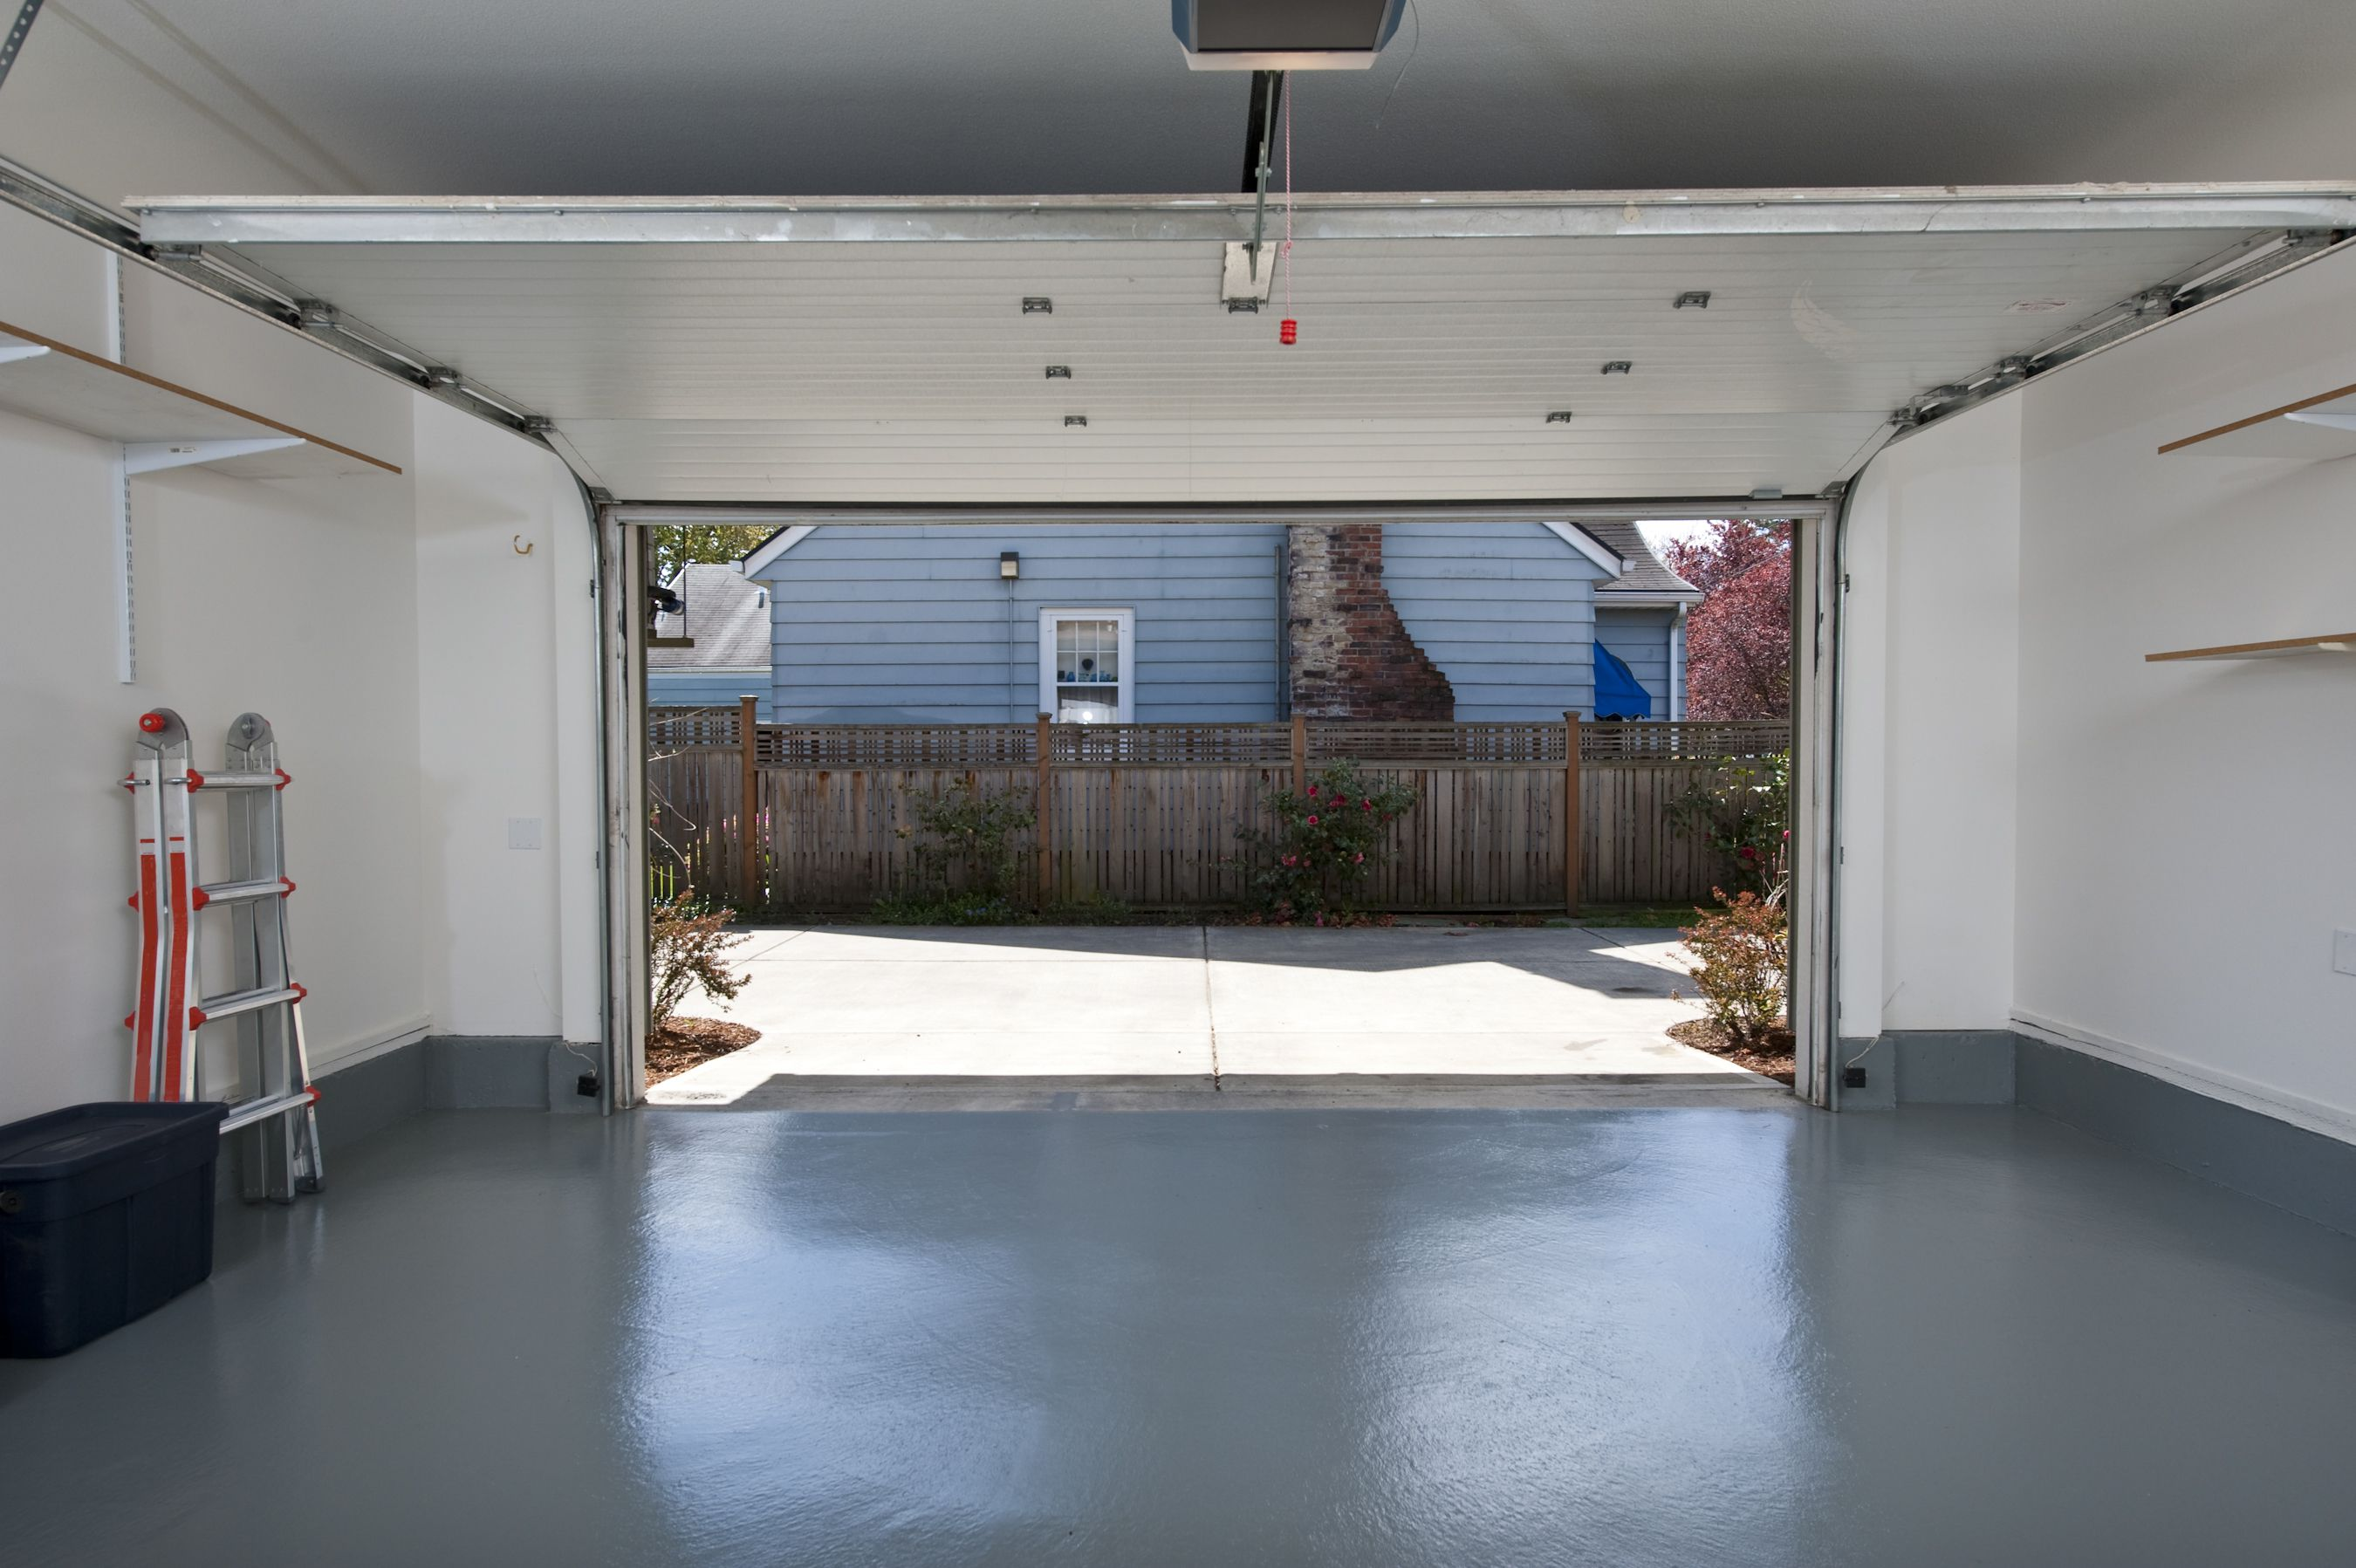 Ly Epoxy Coating To A Garage Floor